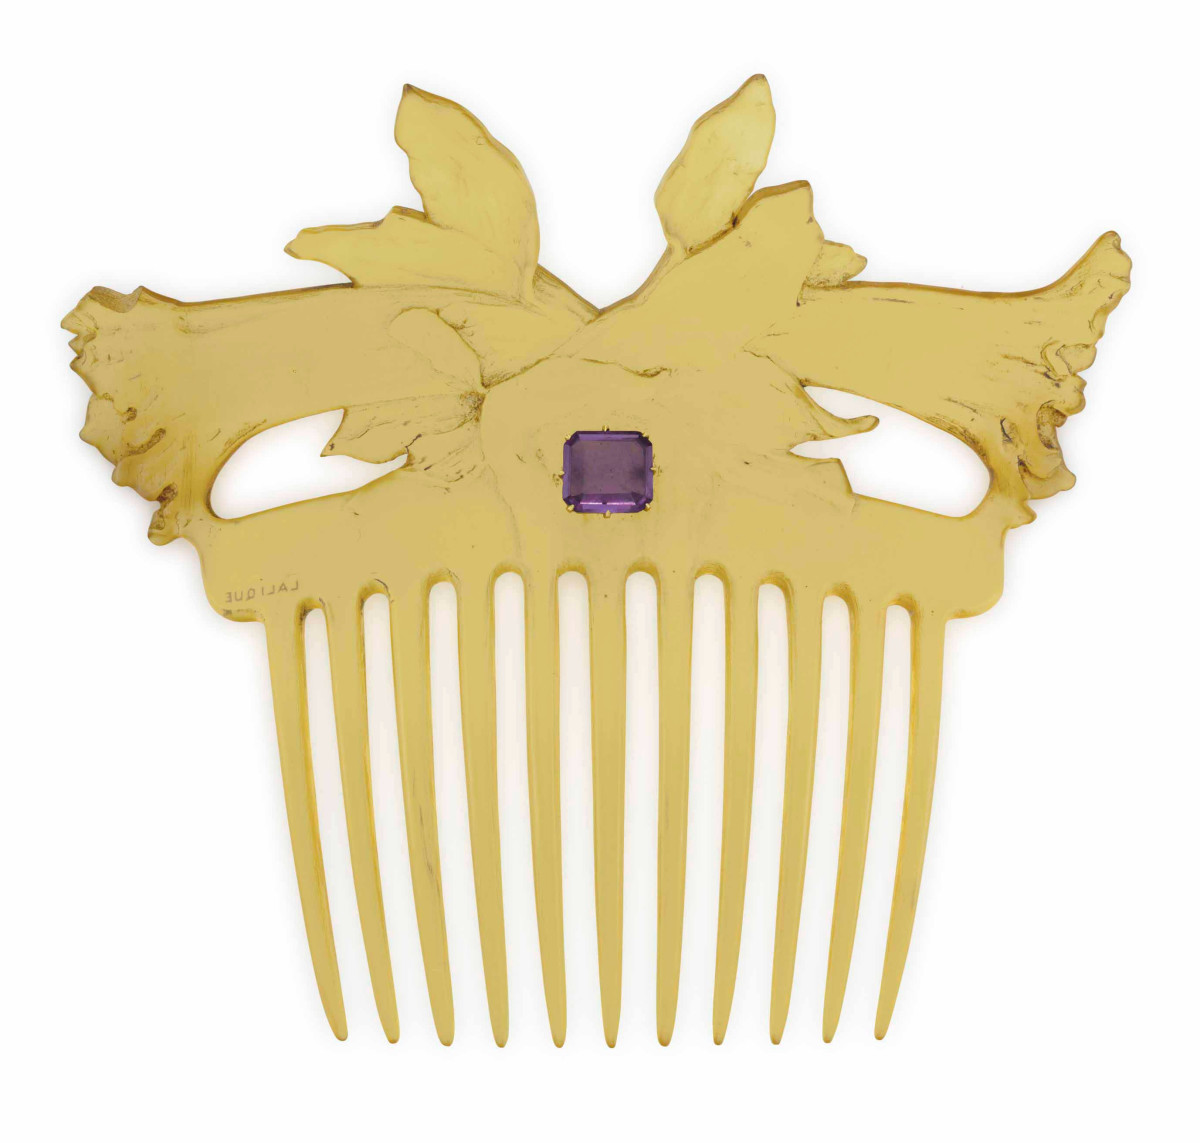 """Flower Blossoms: A carved horn hair comb depicting flower blossoms and centering on a rectangular-cut amethyst, circa 1900, 4-3/4"""" x 4"""". This was from the collection of Peggy and David Rockefeller and sold in 2018 at Christie's for $6,875."""